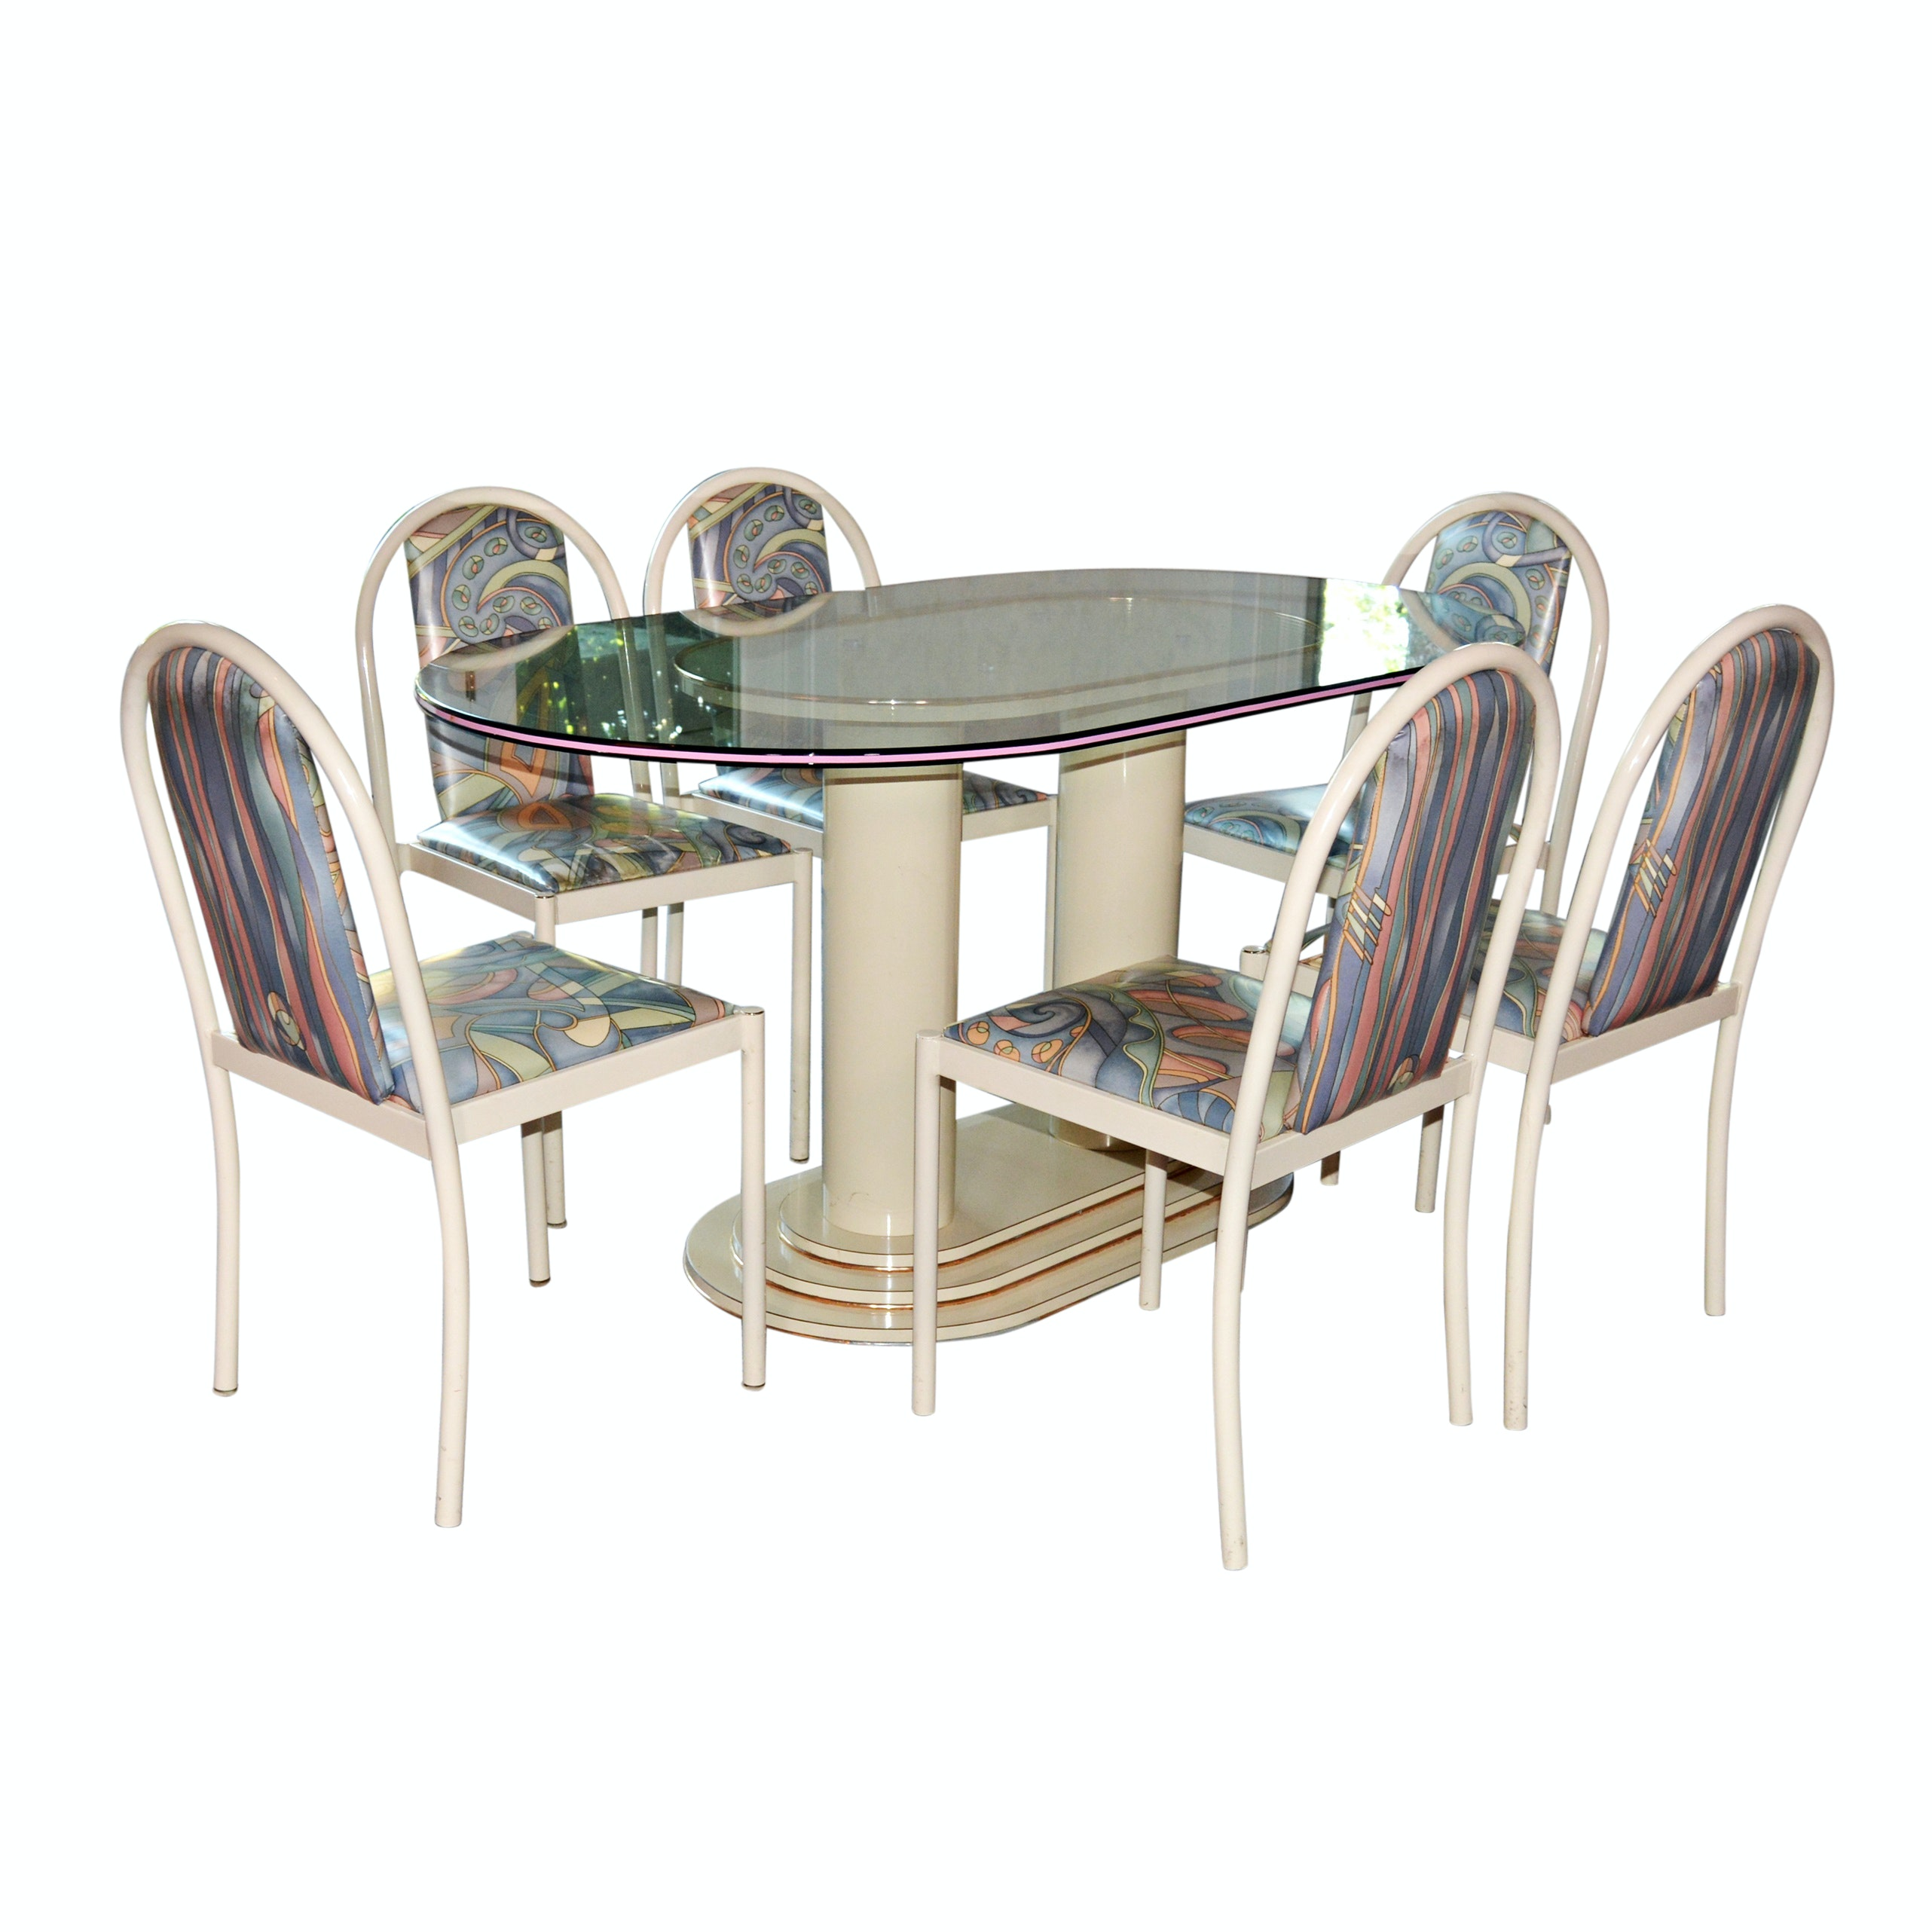 Contemporary Oval Glass Table and Chairs from Greiwe Interiors